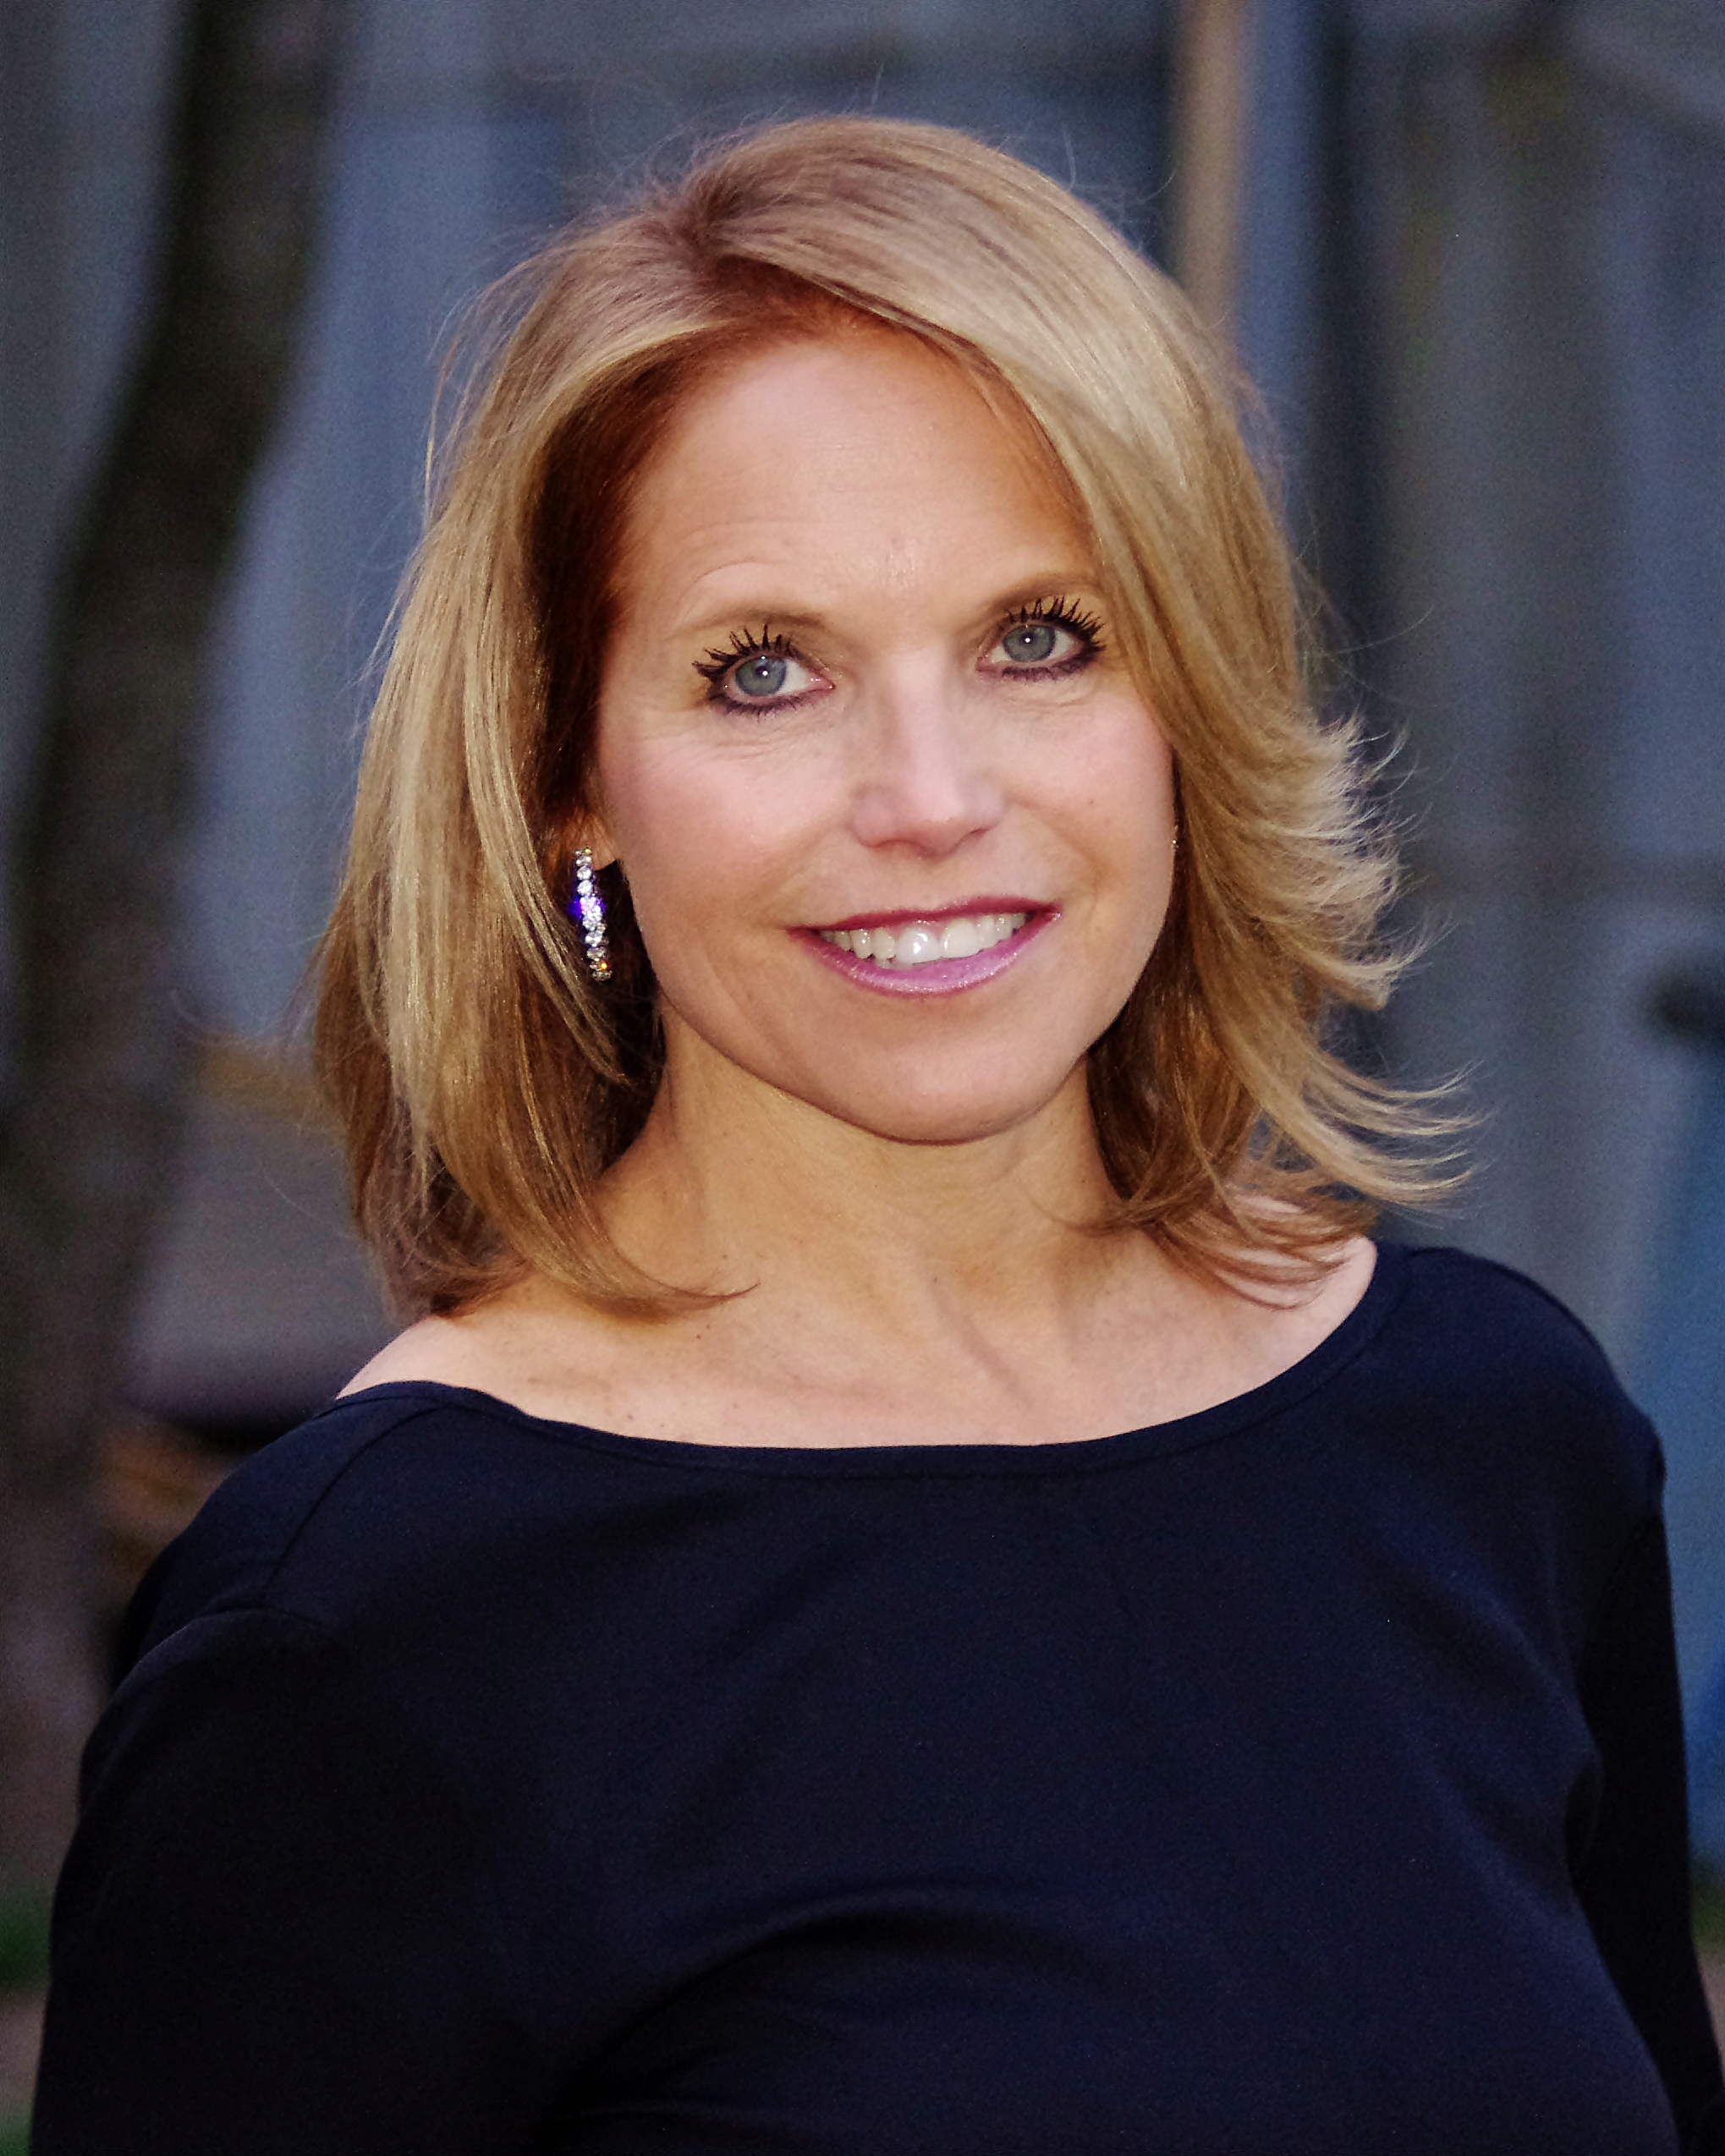 Description Katie Couric VF 2012 Shankbone 2.JPG